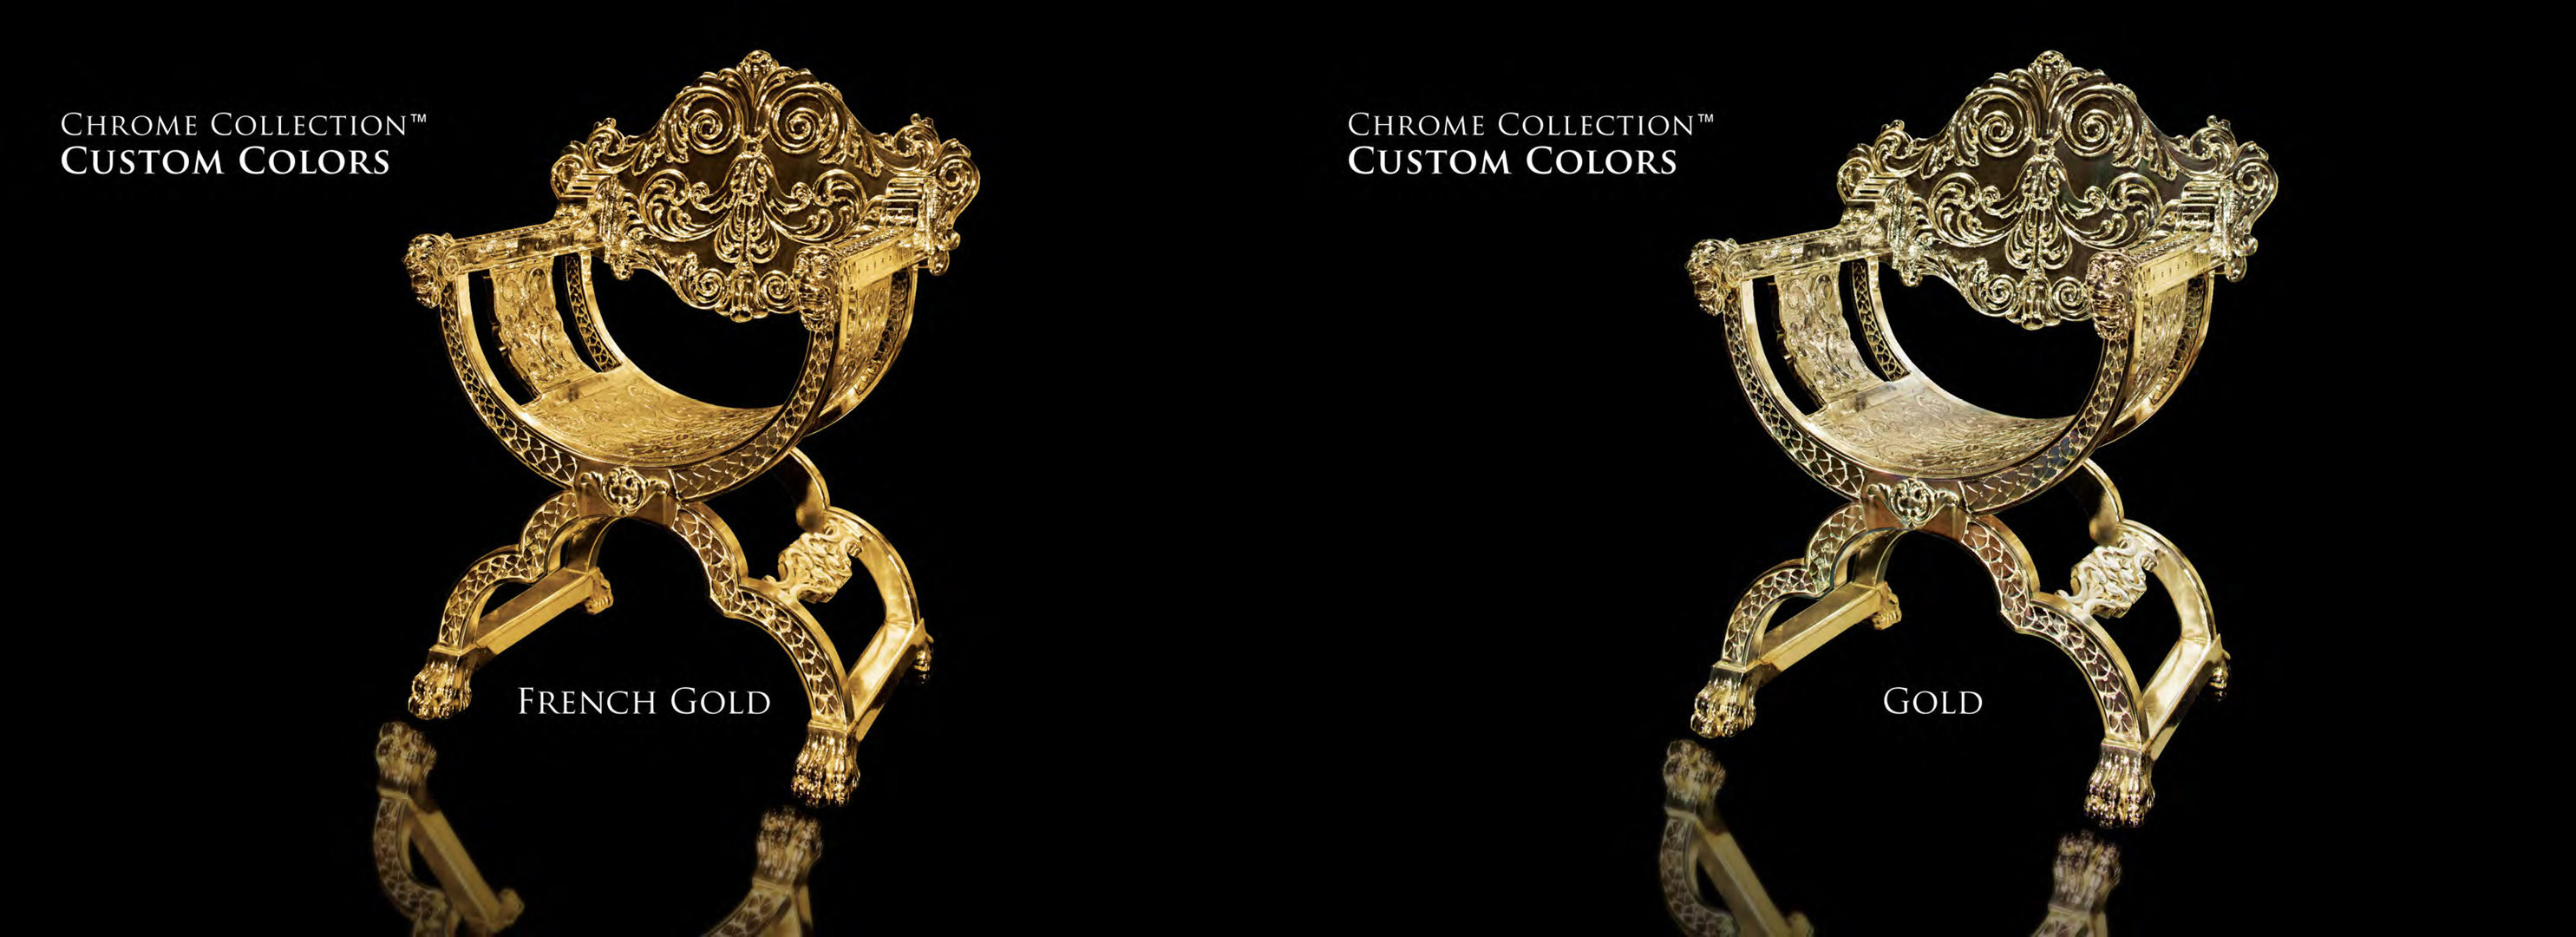 Lion Chair - French Gold & Gold